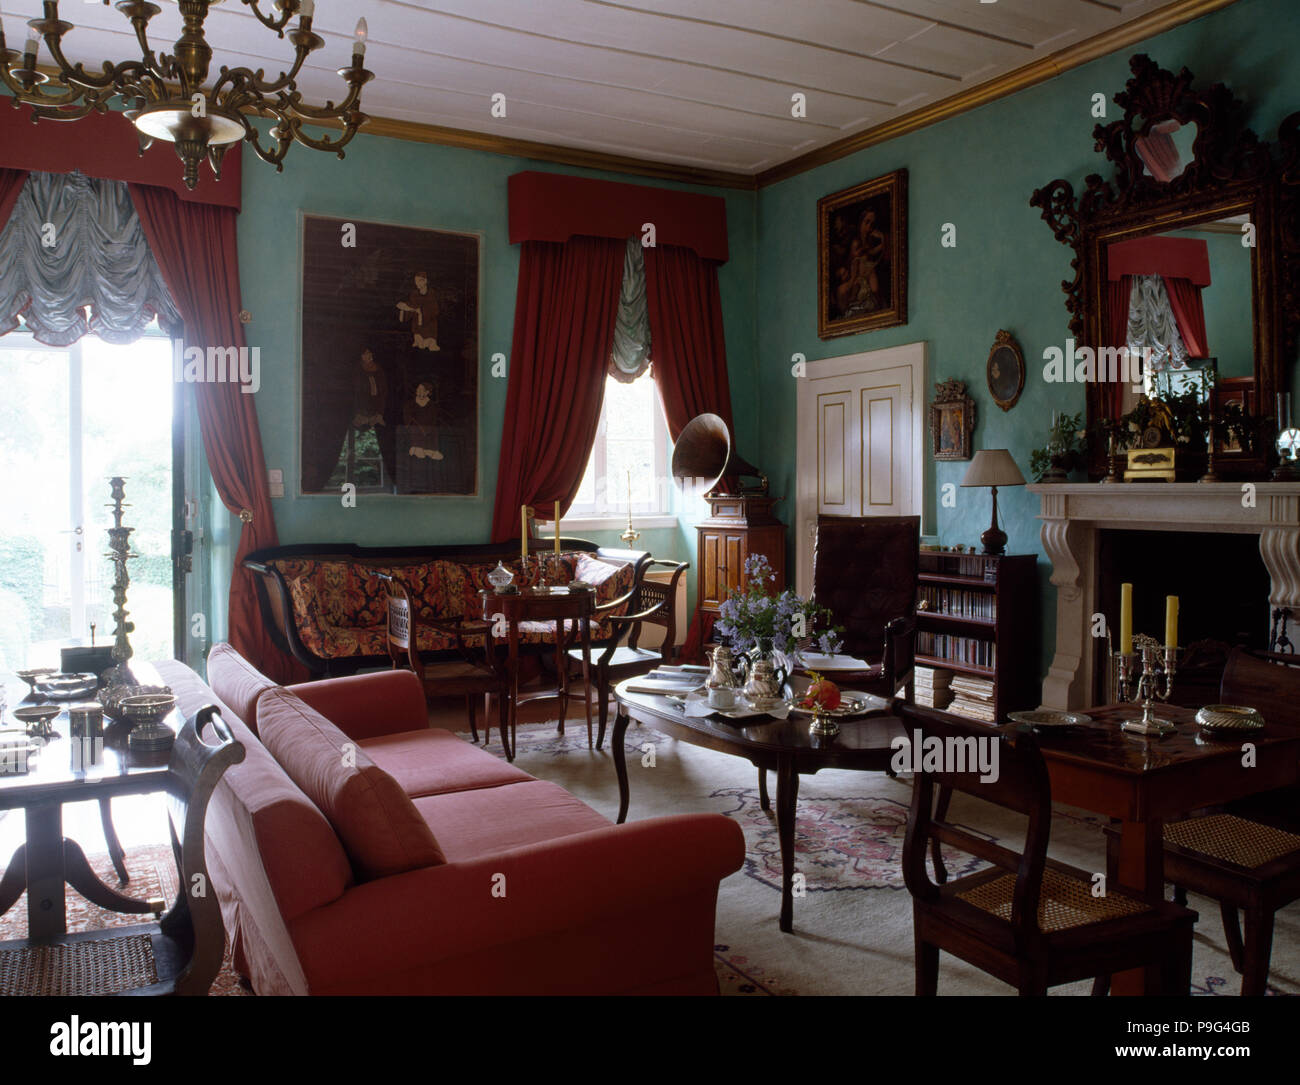 Pink Sofa And Antique Chairs And Small Tables In A Pale Turquoise Living  Room With Red Curtains On Windows